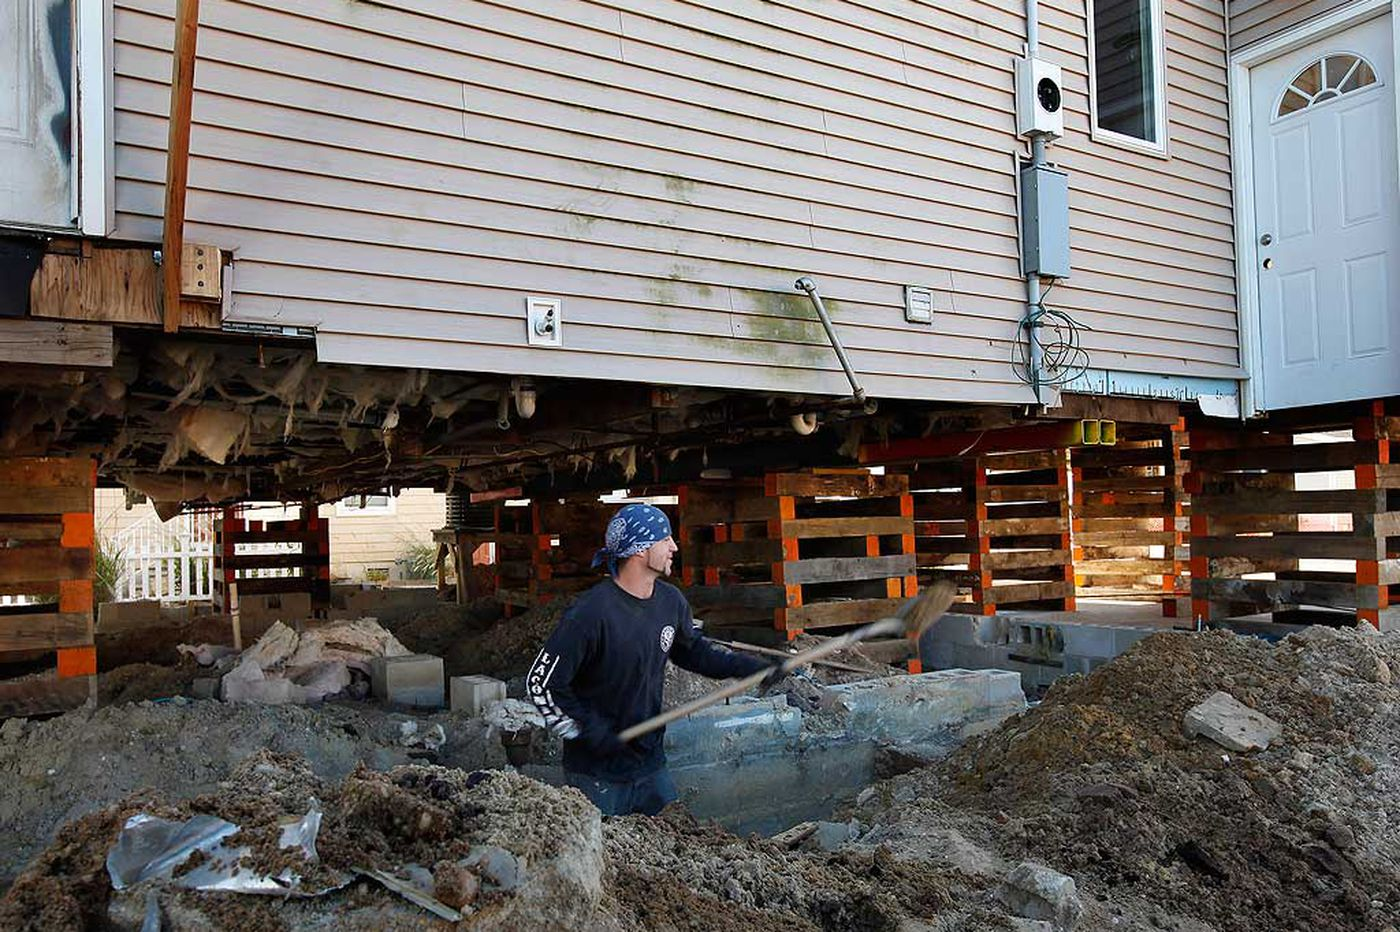 Nearly 7 years after Superstorm Sandy, new life for NJ damages claim